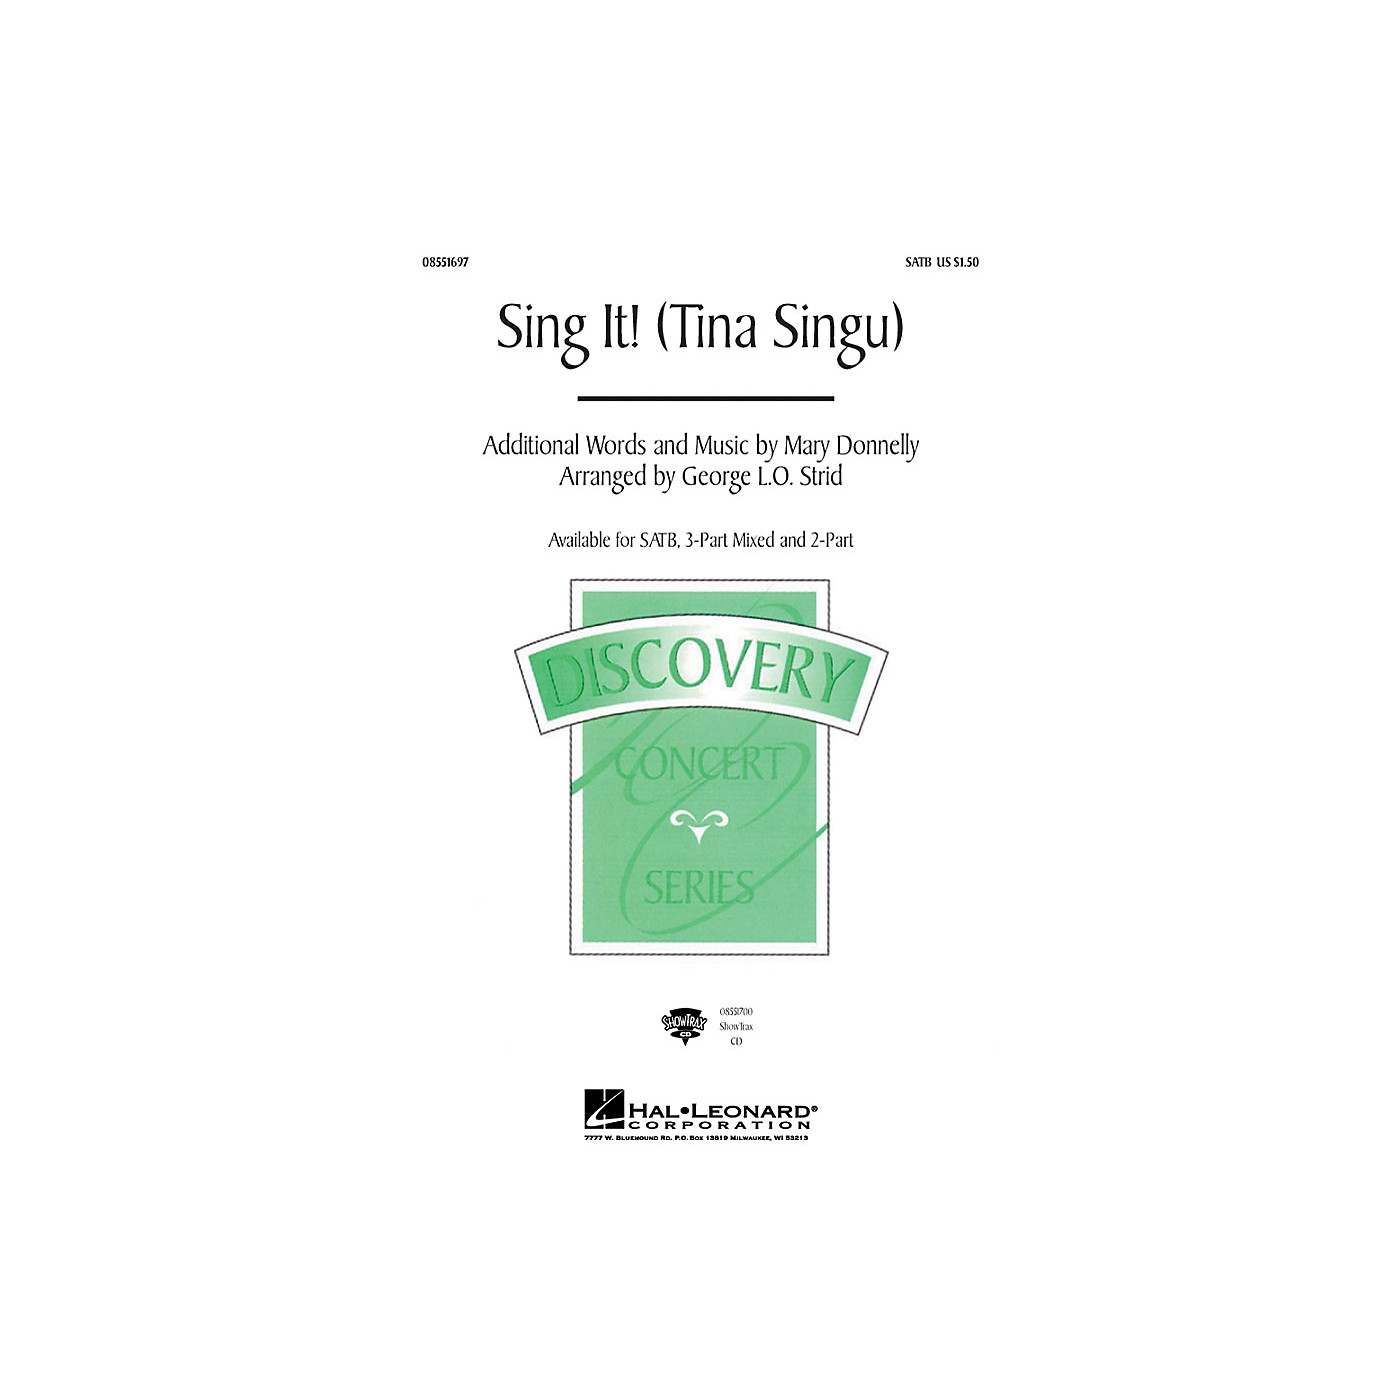 Hal Leonard Tina Singu (Sing It!) 3-Part Mixed Composed by Mary Donnelly thumbnail